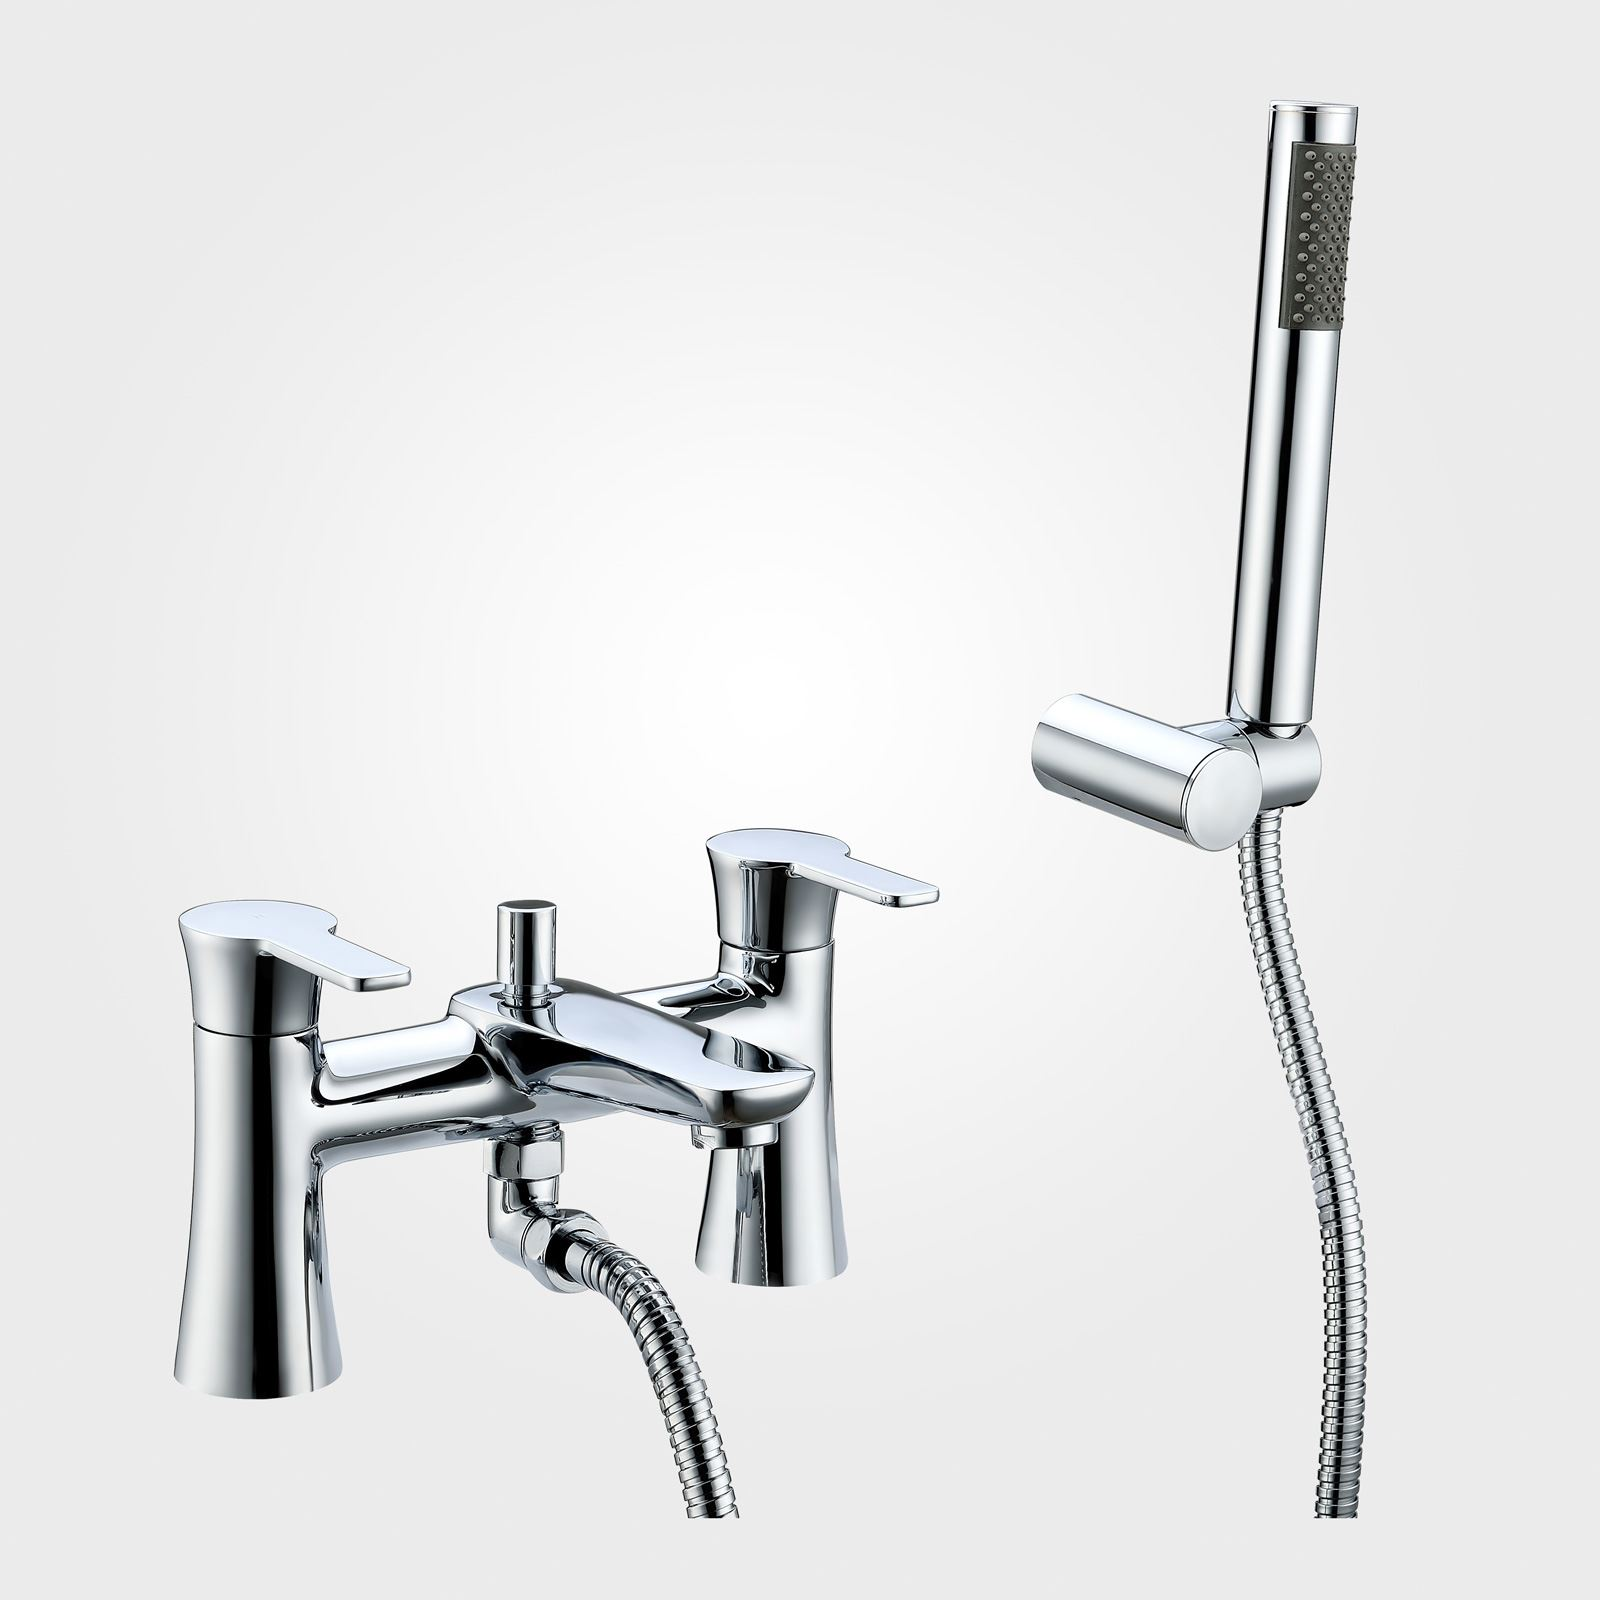 PERTH BATH SHOWER TAP MIXER WITH PENCIL HANDSET AND FIXING ...